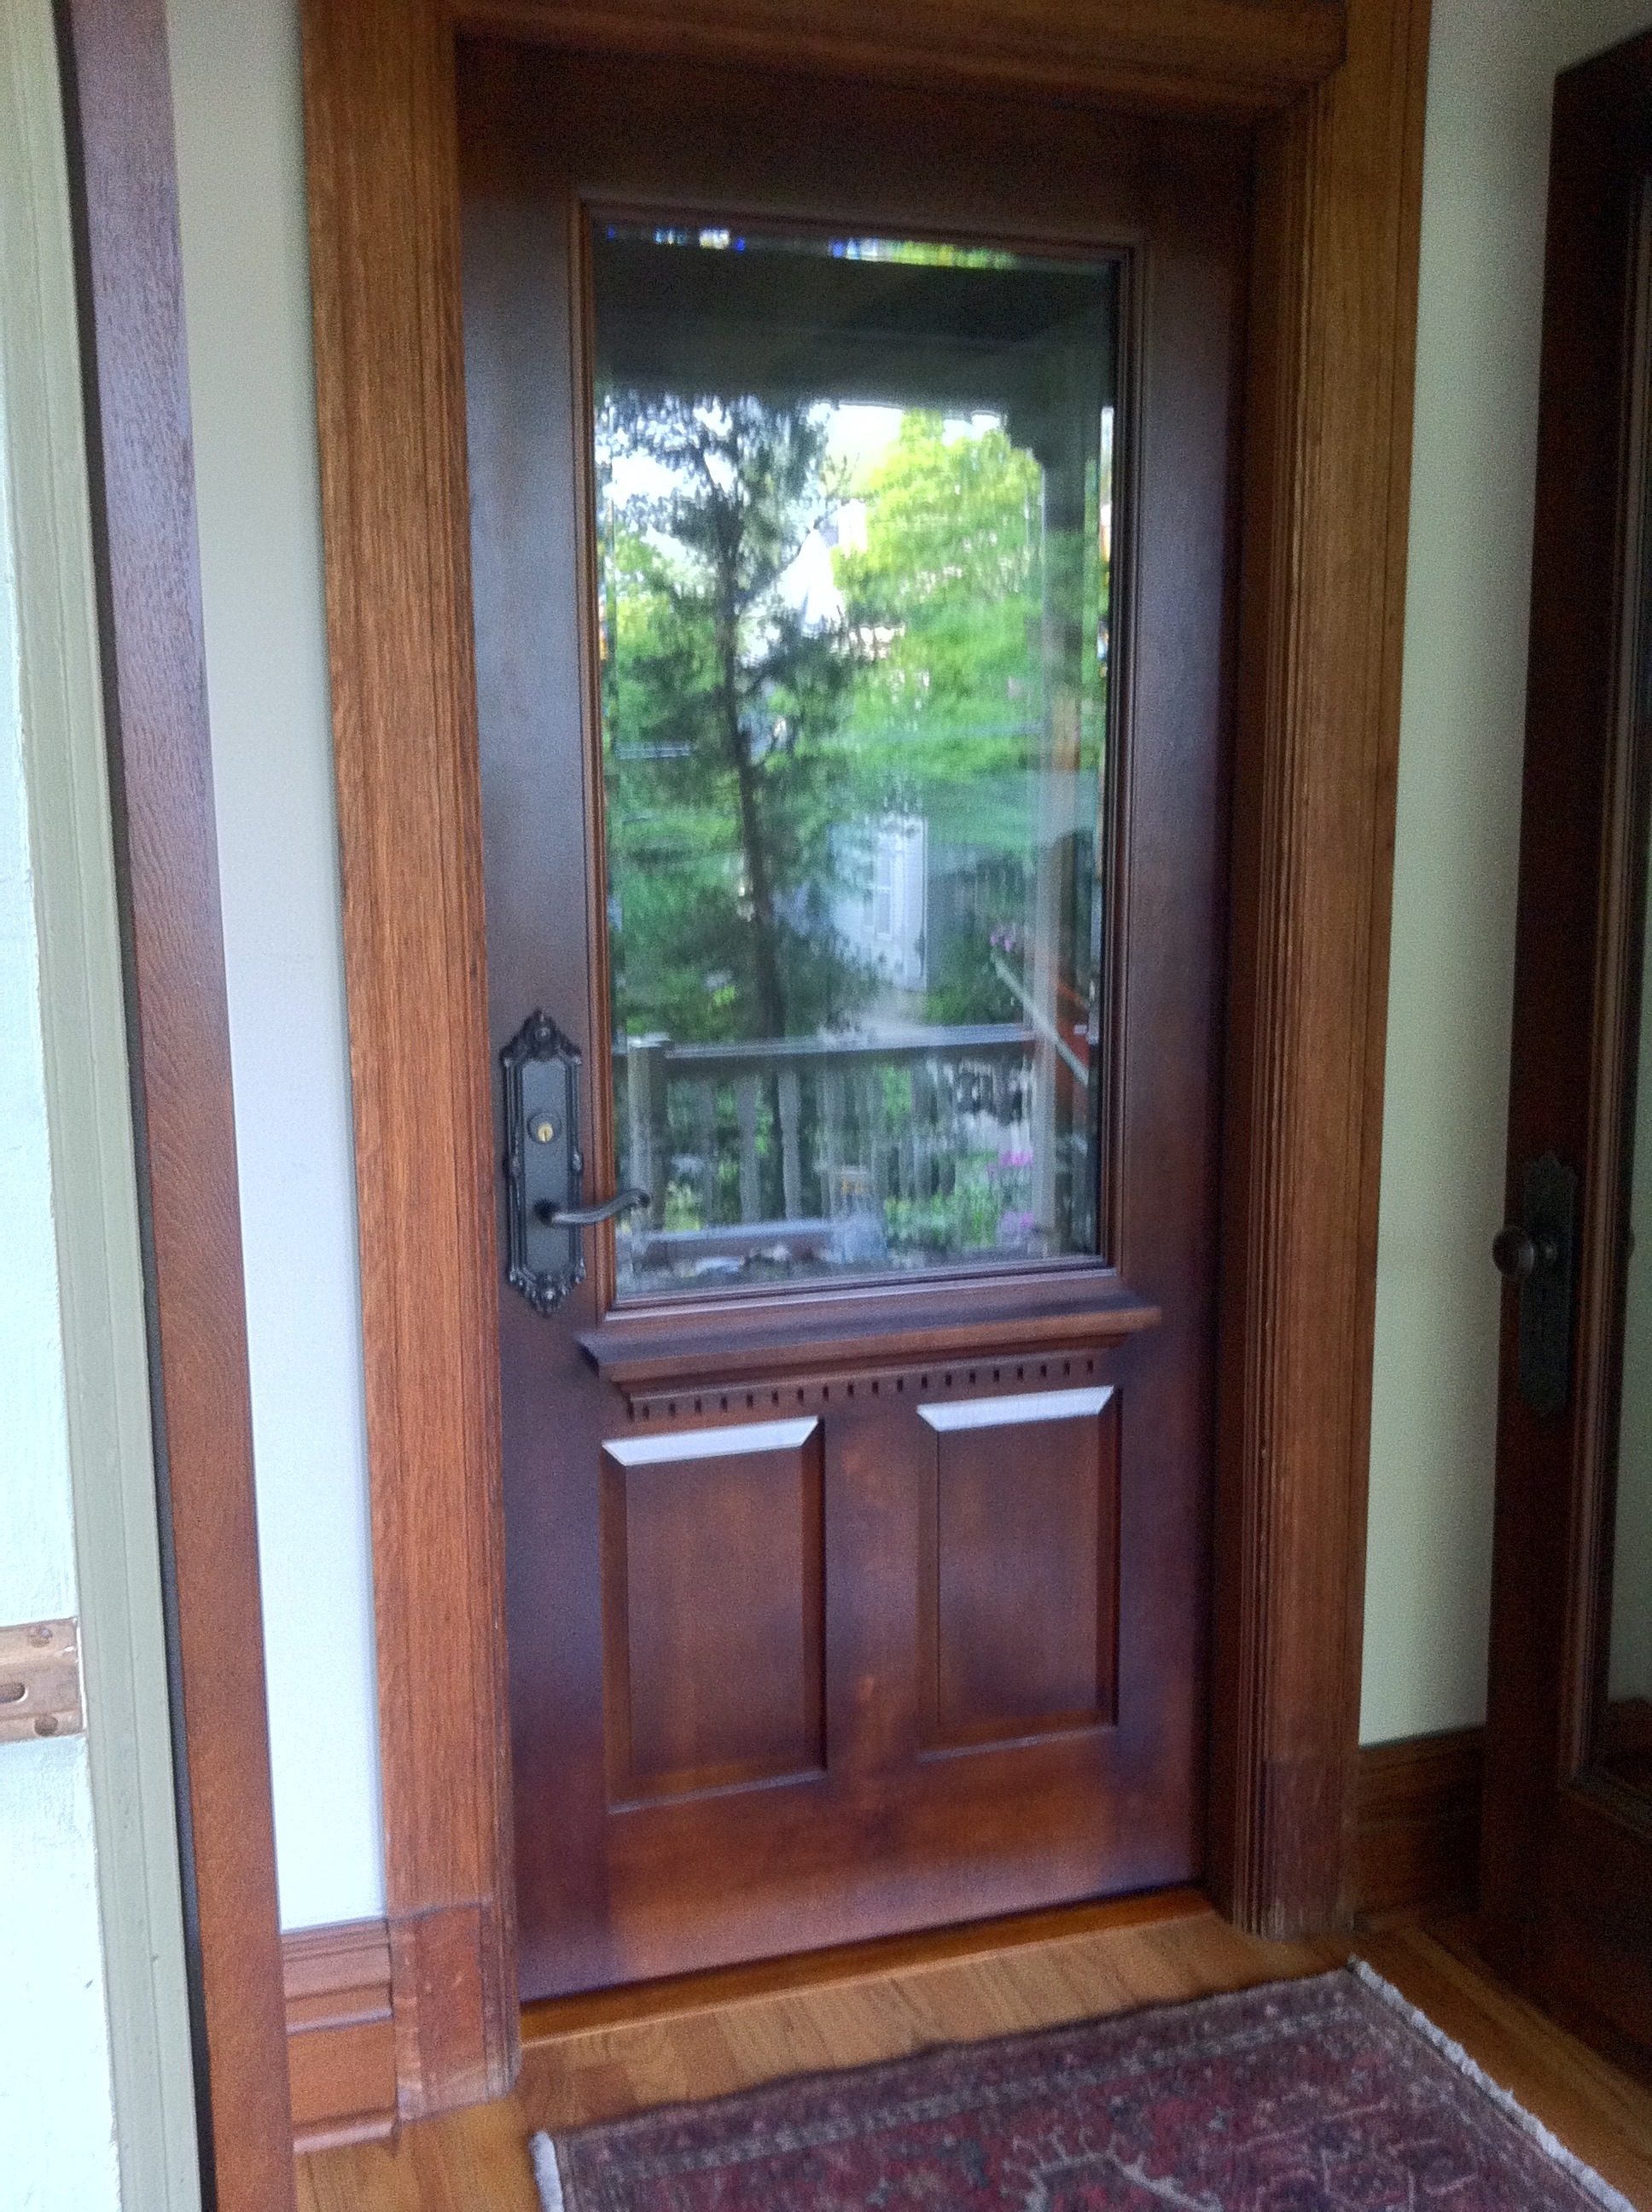 Qt. sawn white oak with insulated beveled glass unit.